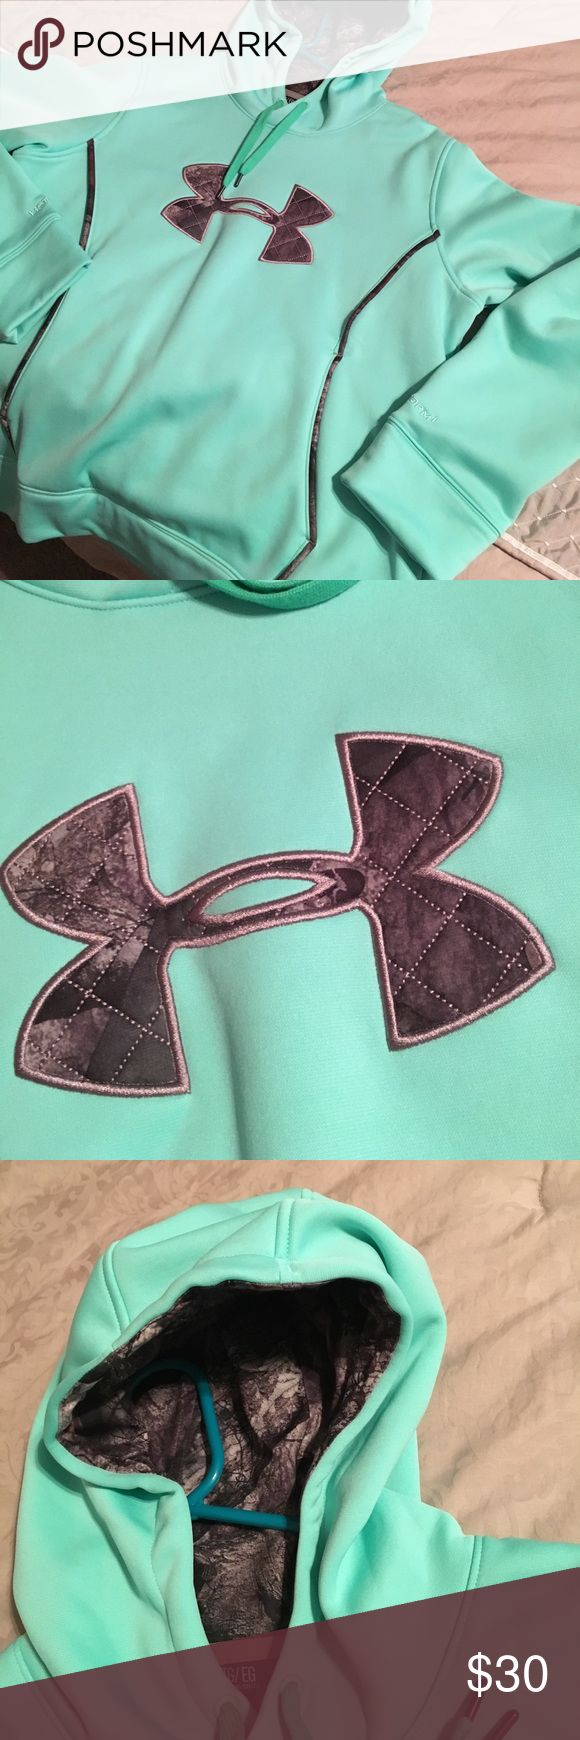 Under Armour hooded pullover Brand new condition...worn once, washed gently and hung to dry.  This just isn't my color. (Mint green/camo)  🙁 Under Armour Tops Sweatshirts & Hoodies